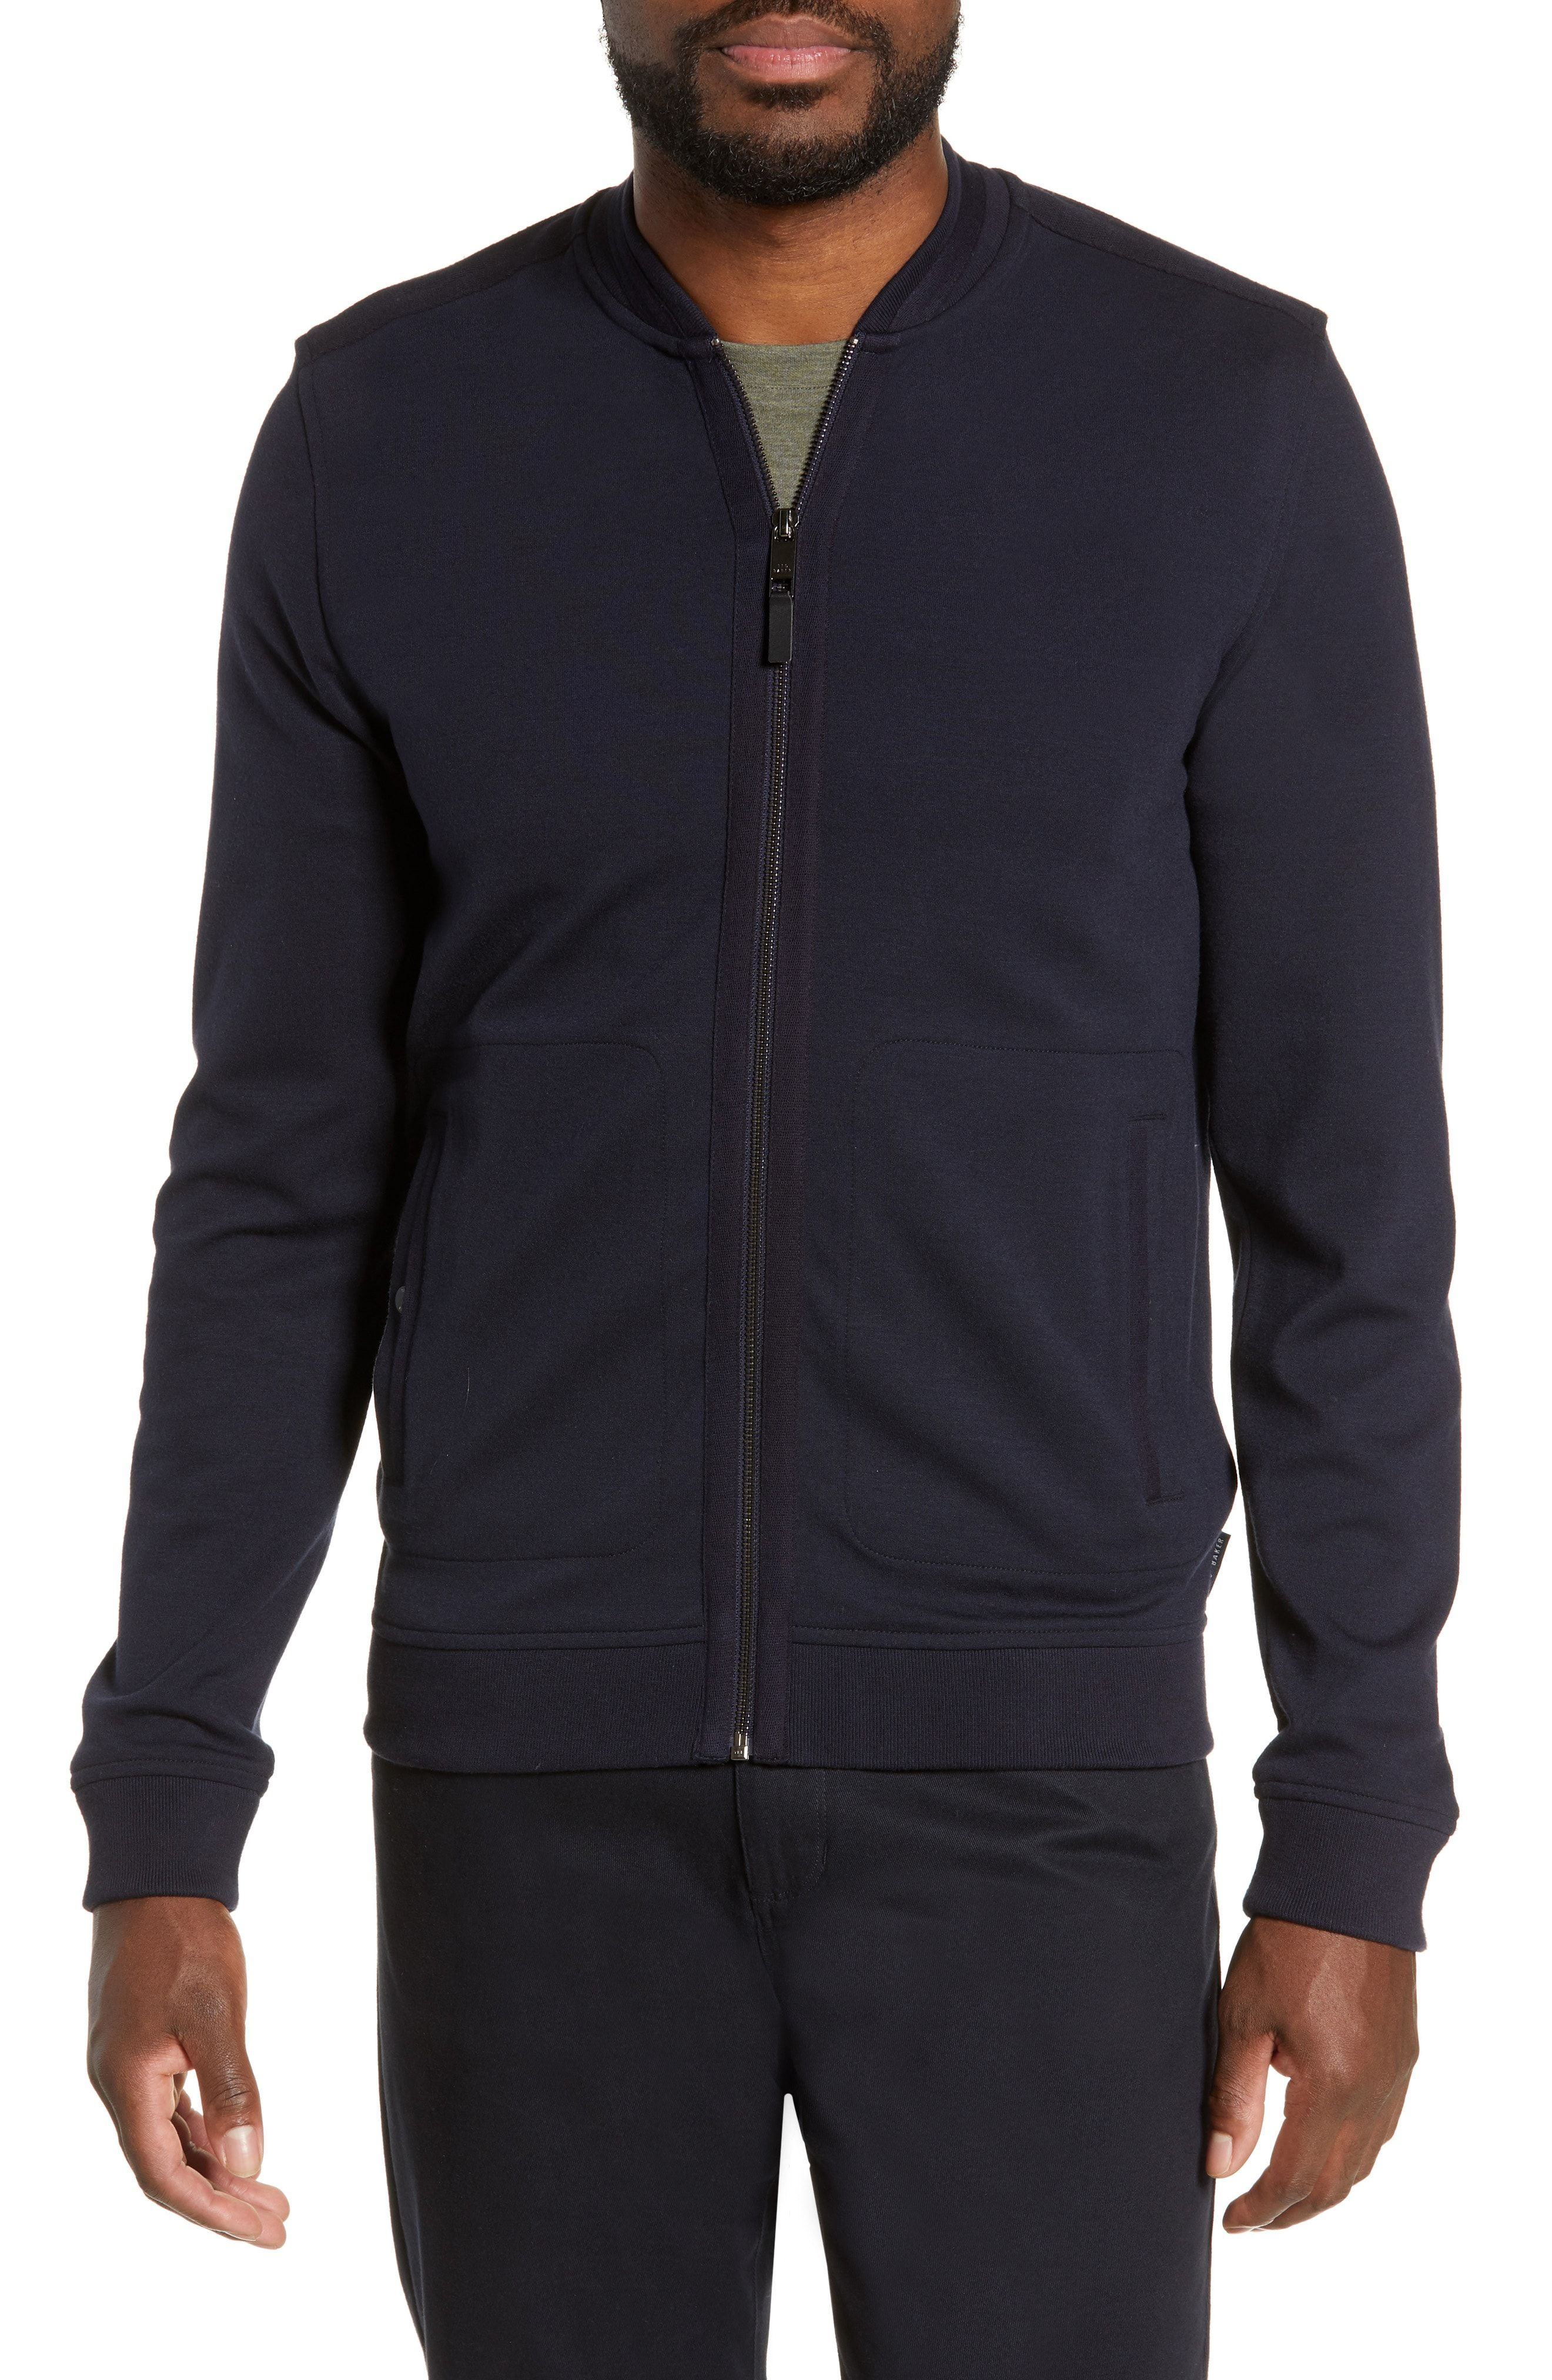 Ted Baker Livid Bomber Jacket With Woven Panels In Navy Modesens [ 4048 x 2640 Pixel ]